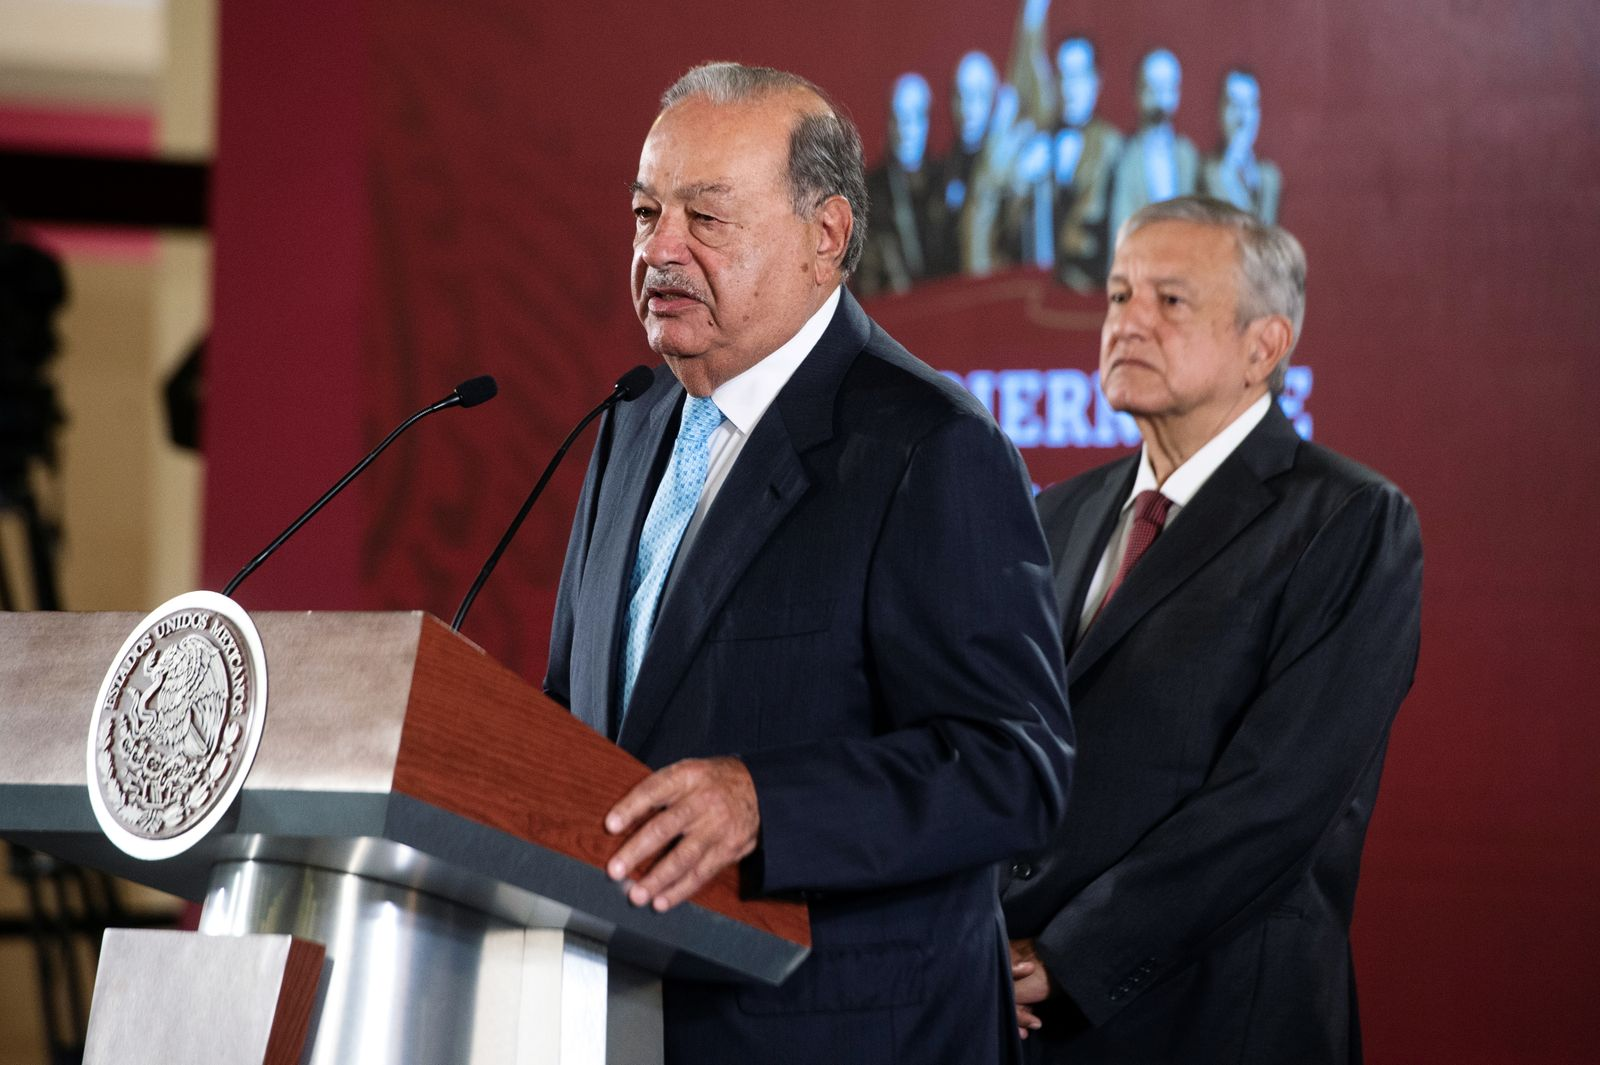 Mexican tycoon Carlos Slim speaks as Mexico's President Andres Manuel Lopez Obrador looks on during an event at National Palace in Mexico City